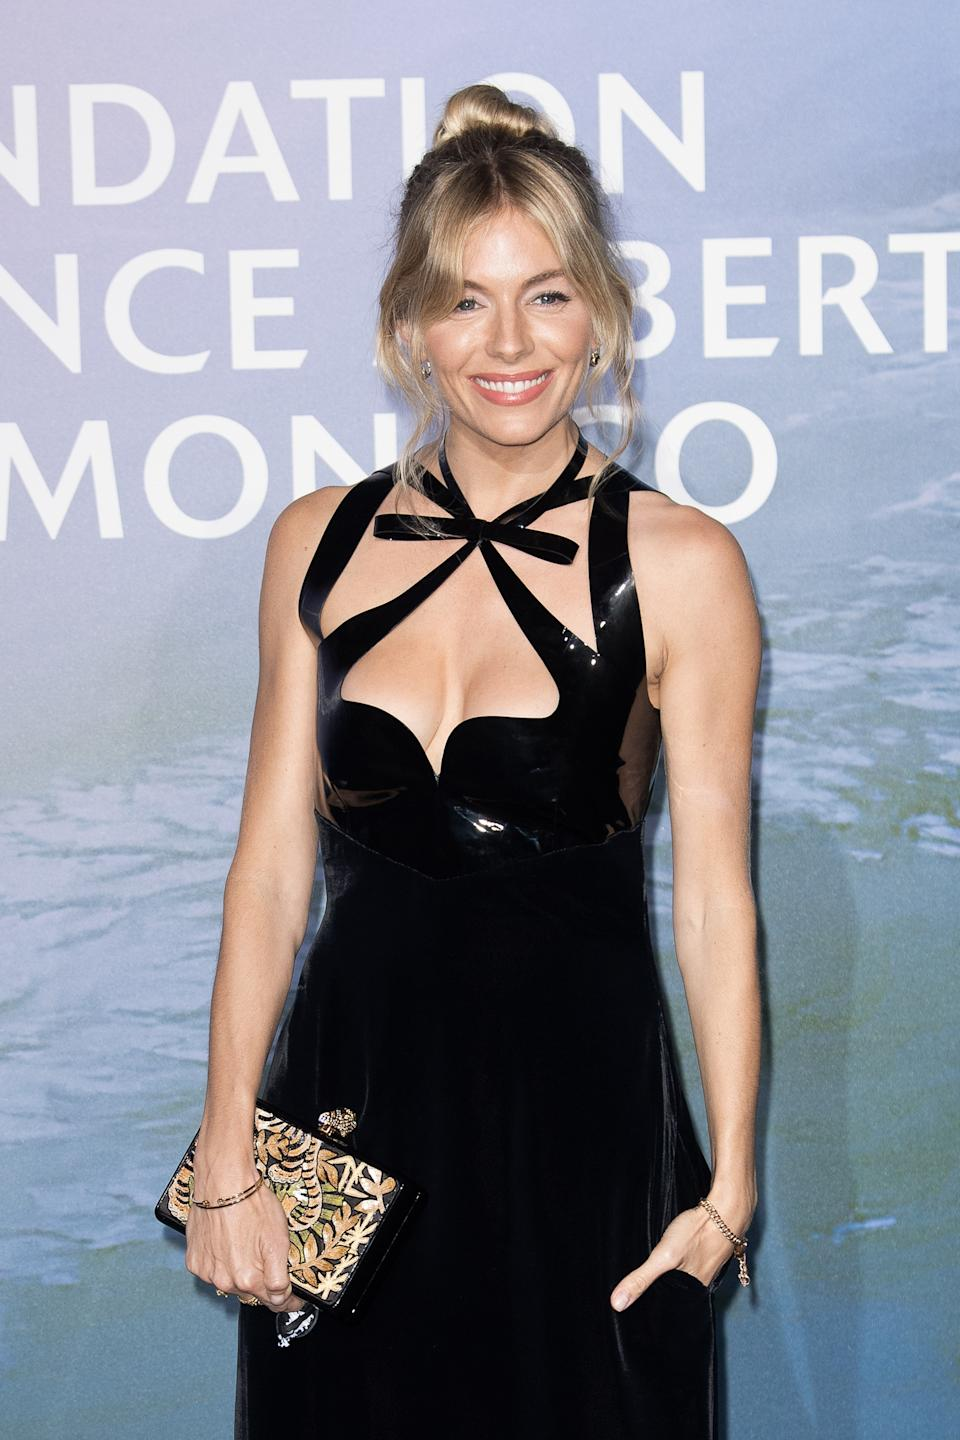 Sienna Miller attends the Monte-Carlo Gala For Planetary Health on September 24, 2020 in Monte-Carlo, Monaco